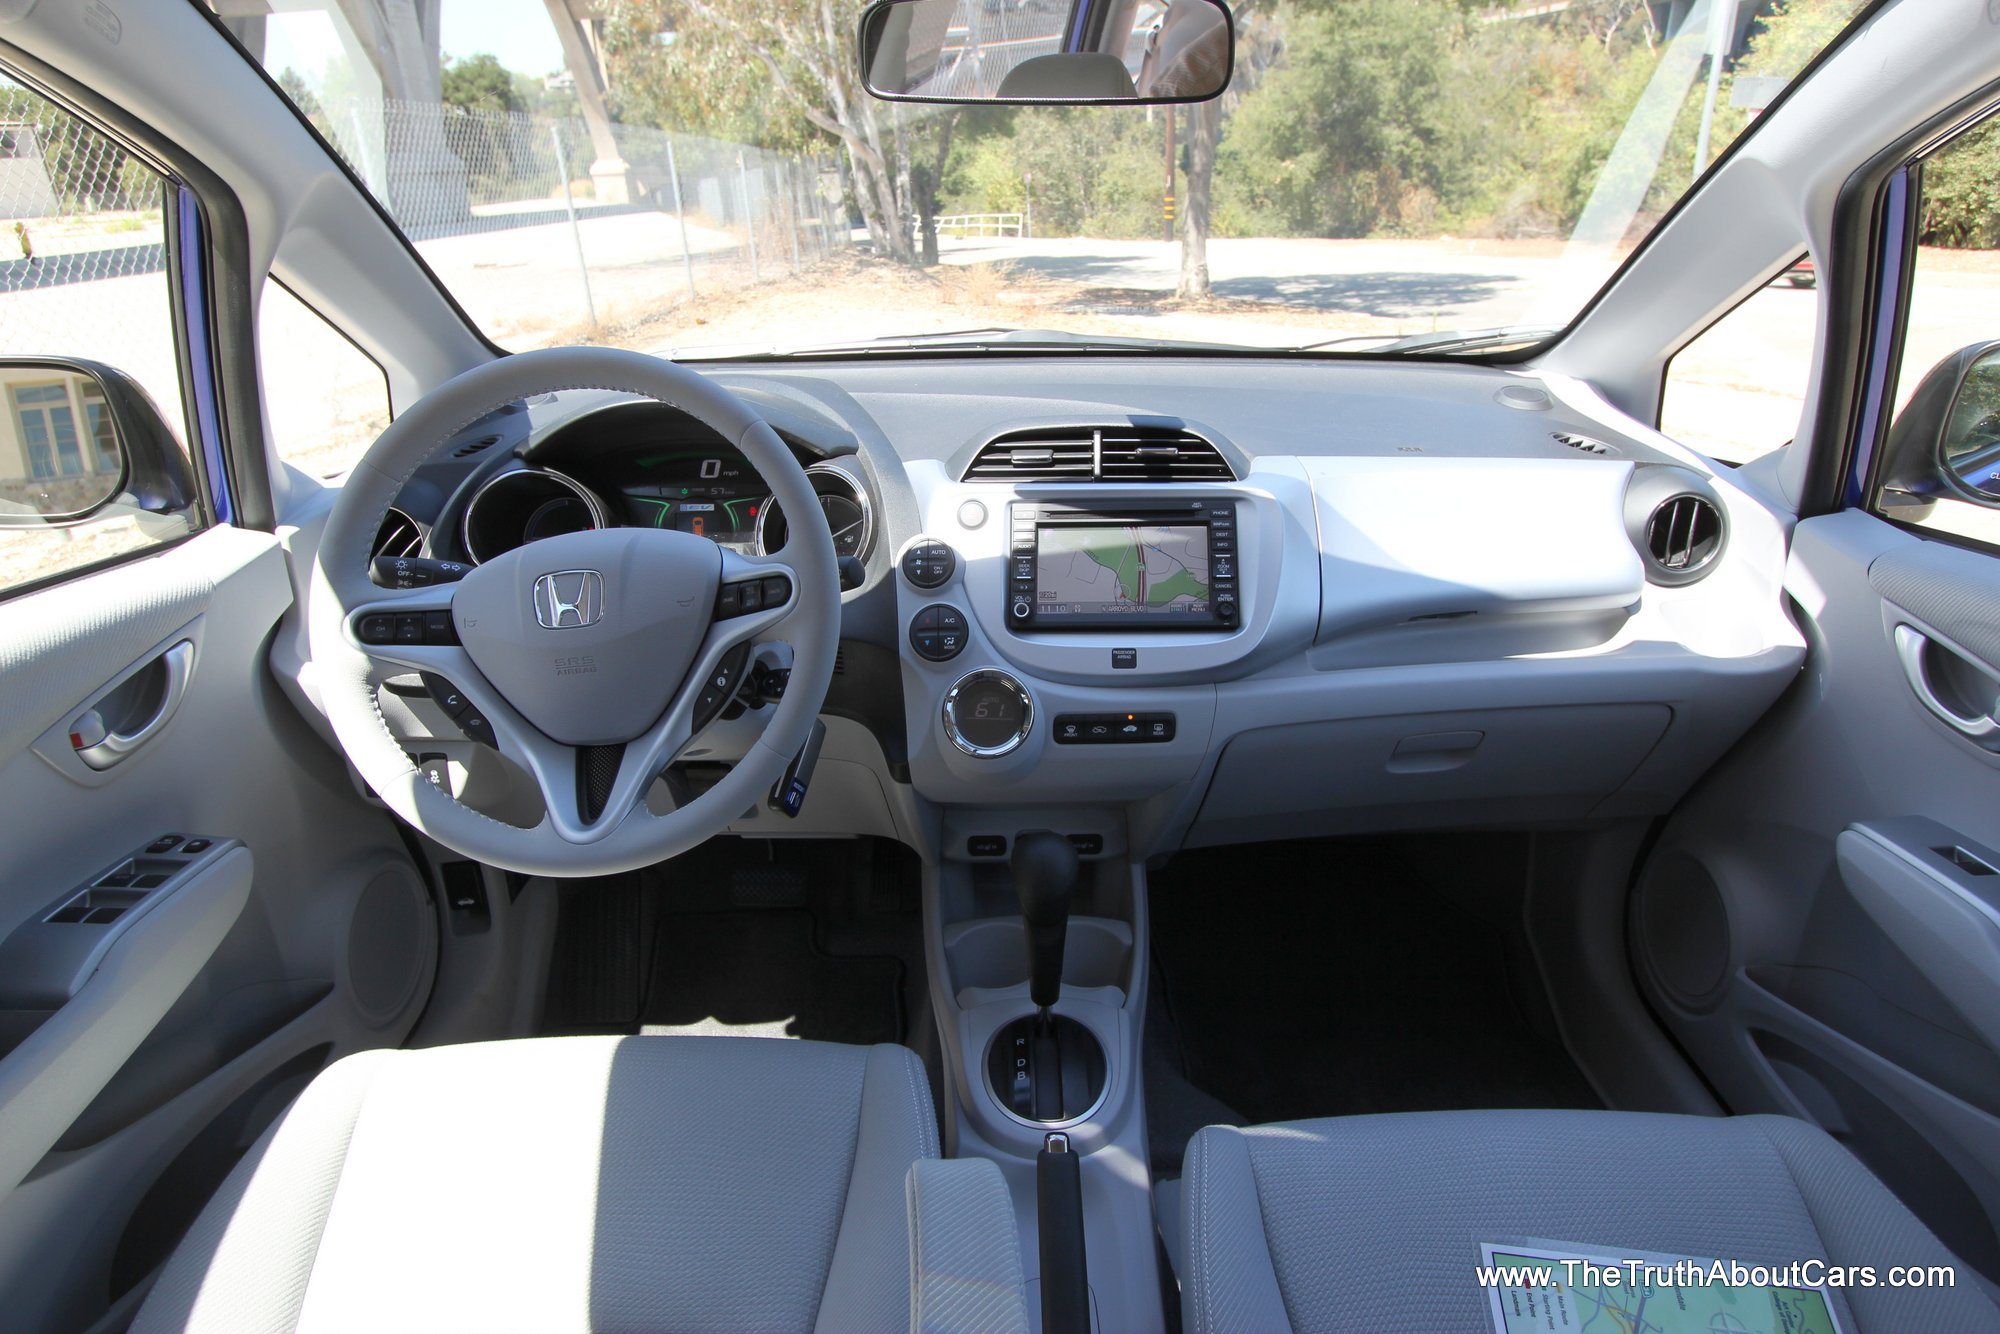 Honda Fit EV interior #1